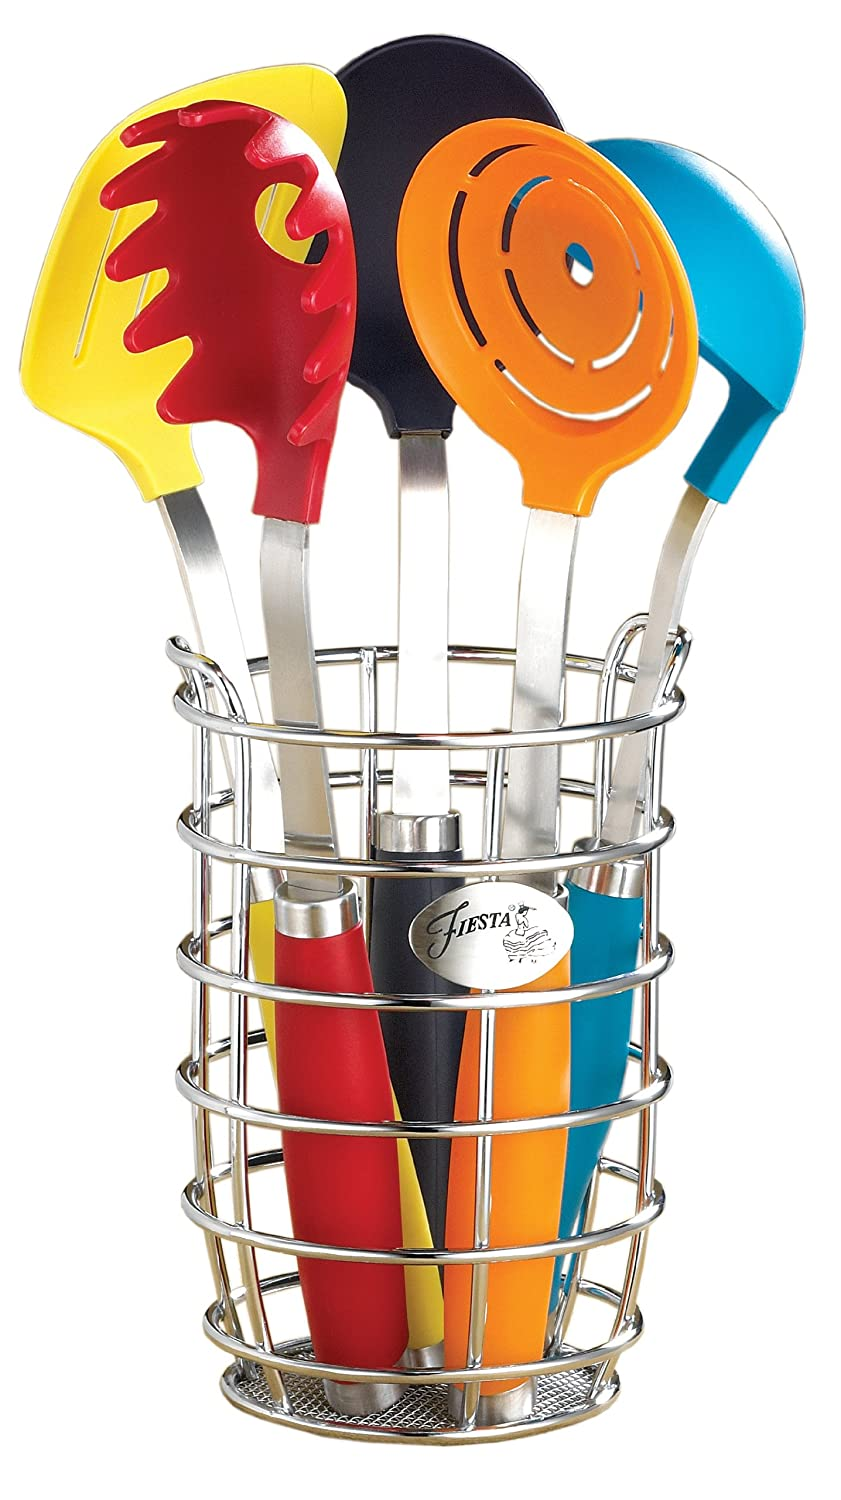 Fiesta 6-Piece Utensil Set with Crock 6216R2FSNC42R